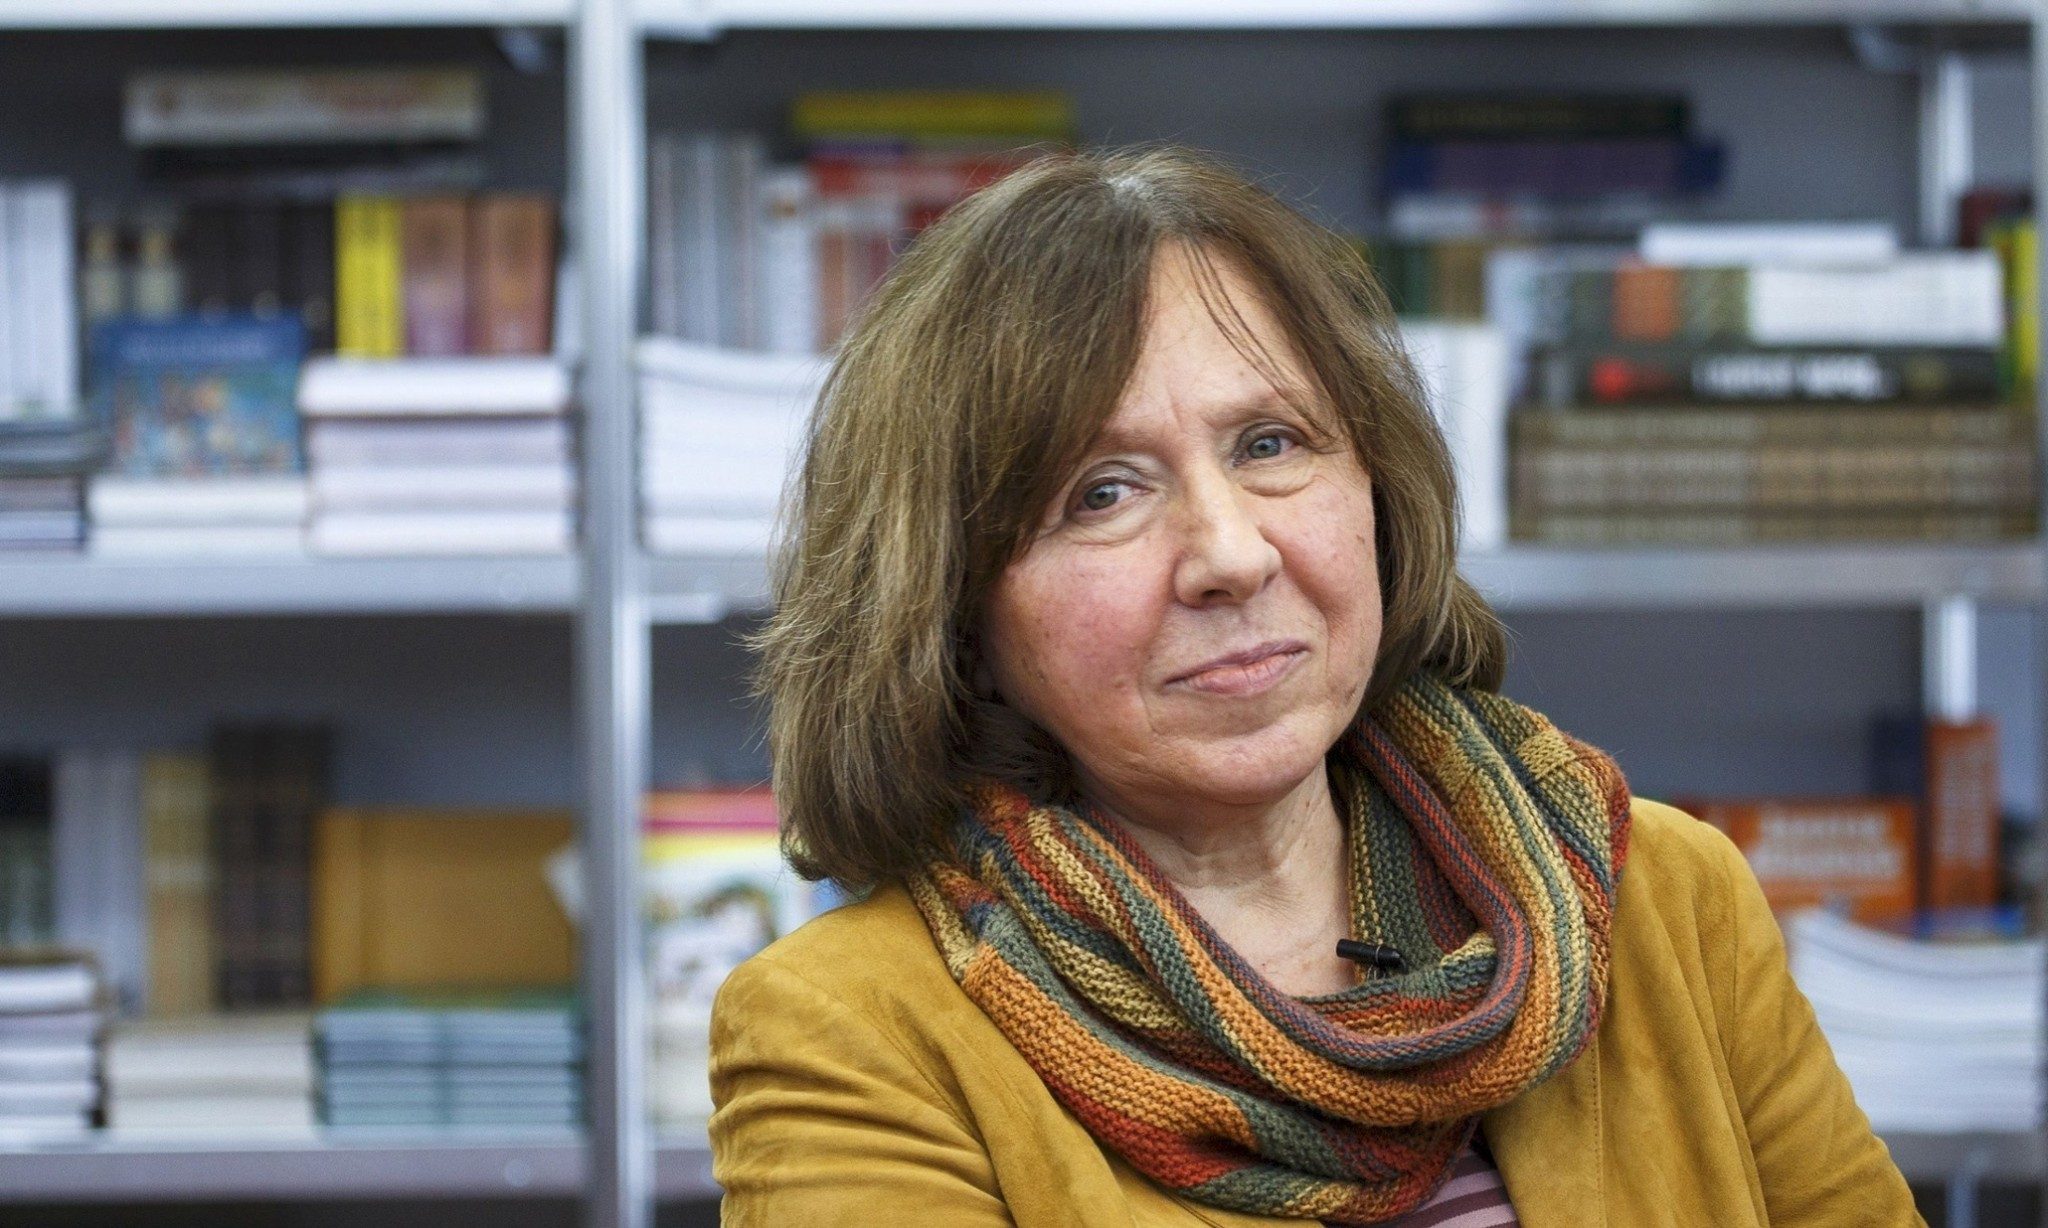 Everything you need to know about Svetlana Alexievich, winner of the Nobel prize in literature